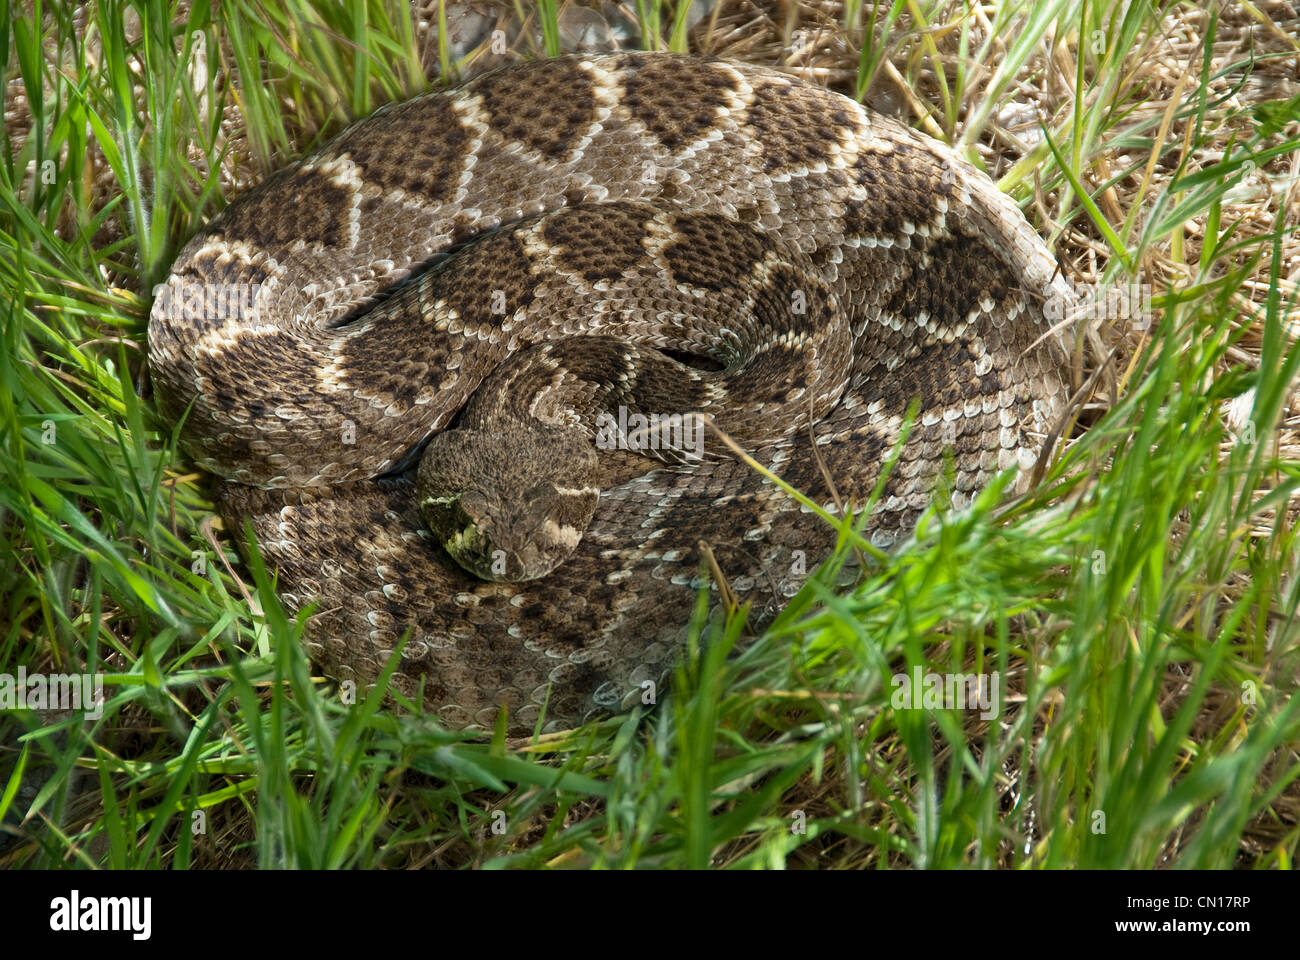 Western Diamondback Rattlesnake Crotalus atrox Potter County Texas USA Stock Photo